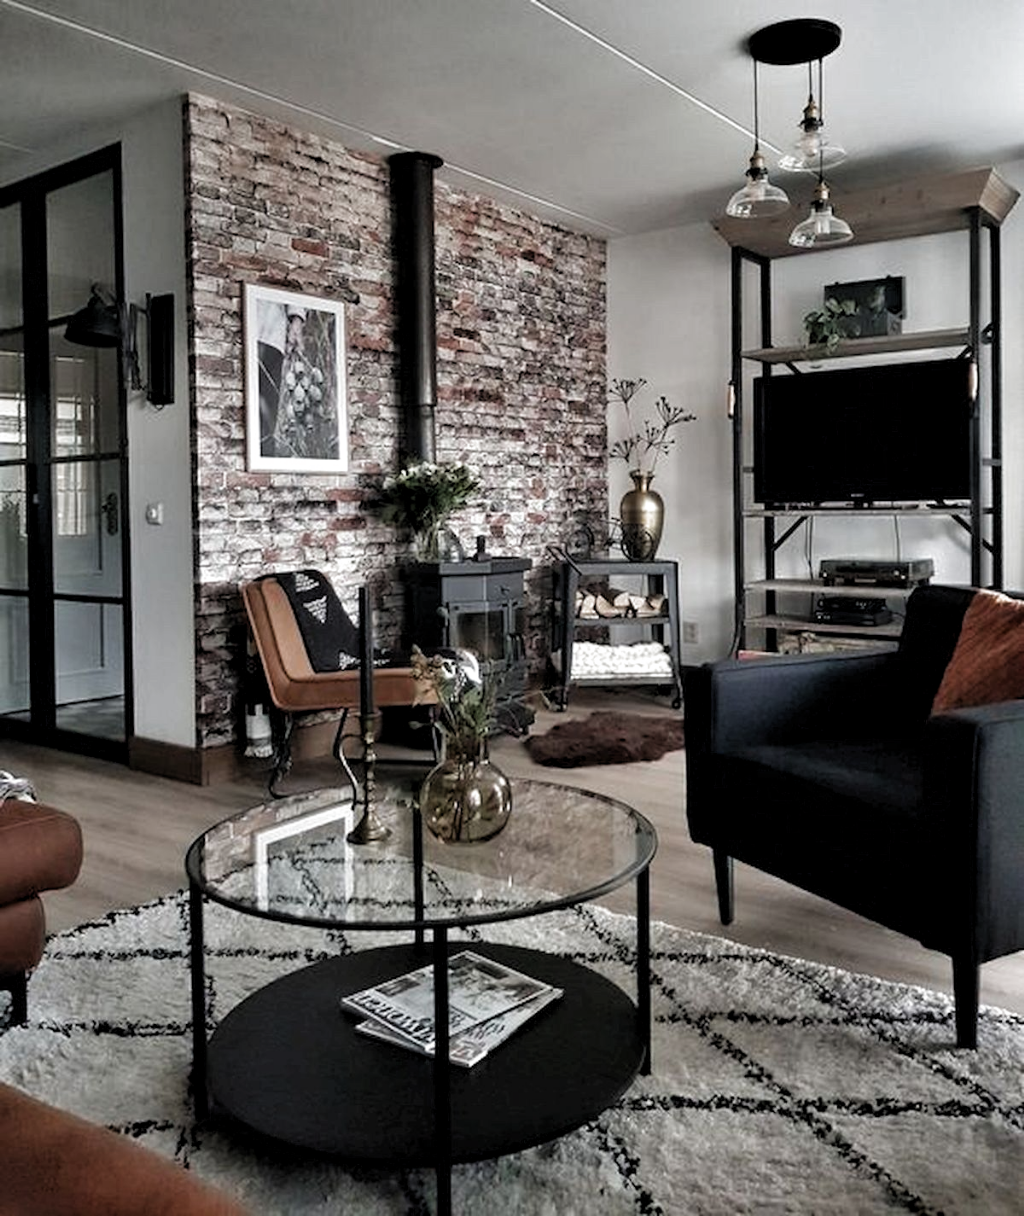 72 Industrial Living Room Decor Ideas 46 Living Room 72 Industrial Li In 2020 Industrial Style Living Room Industrial Decor Living Room Brick Wallpaper Living Room